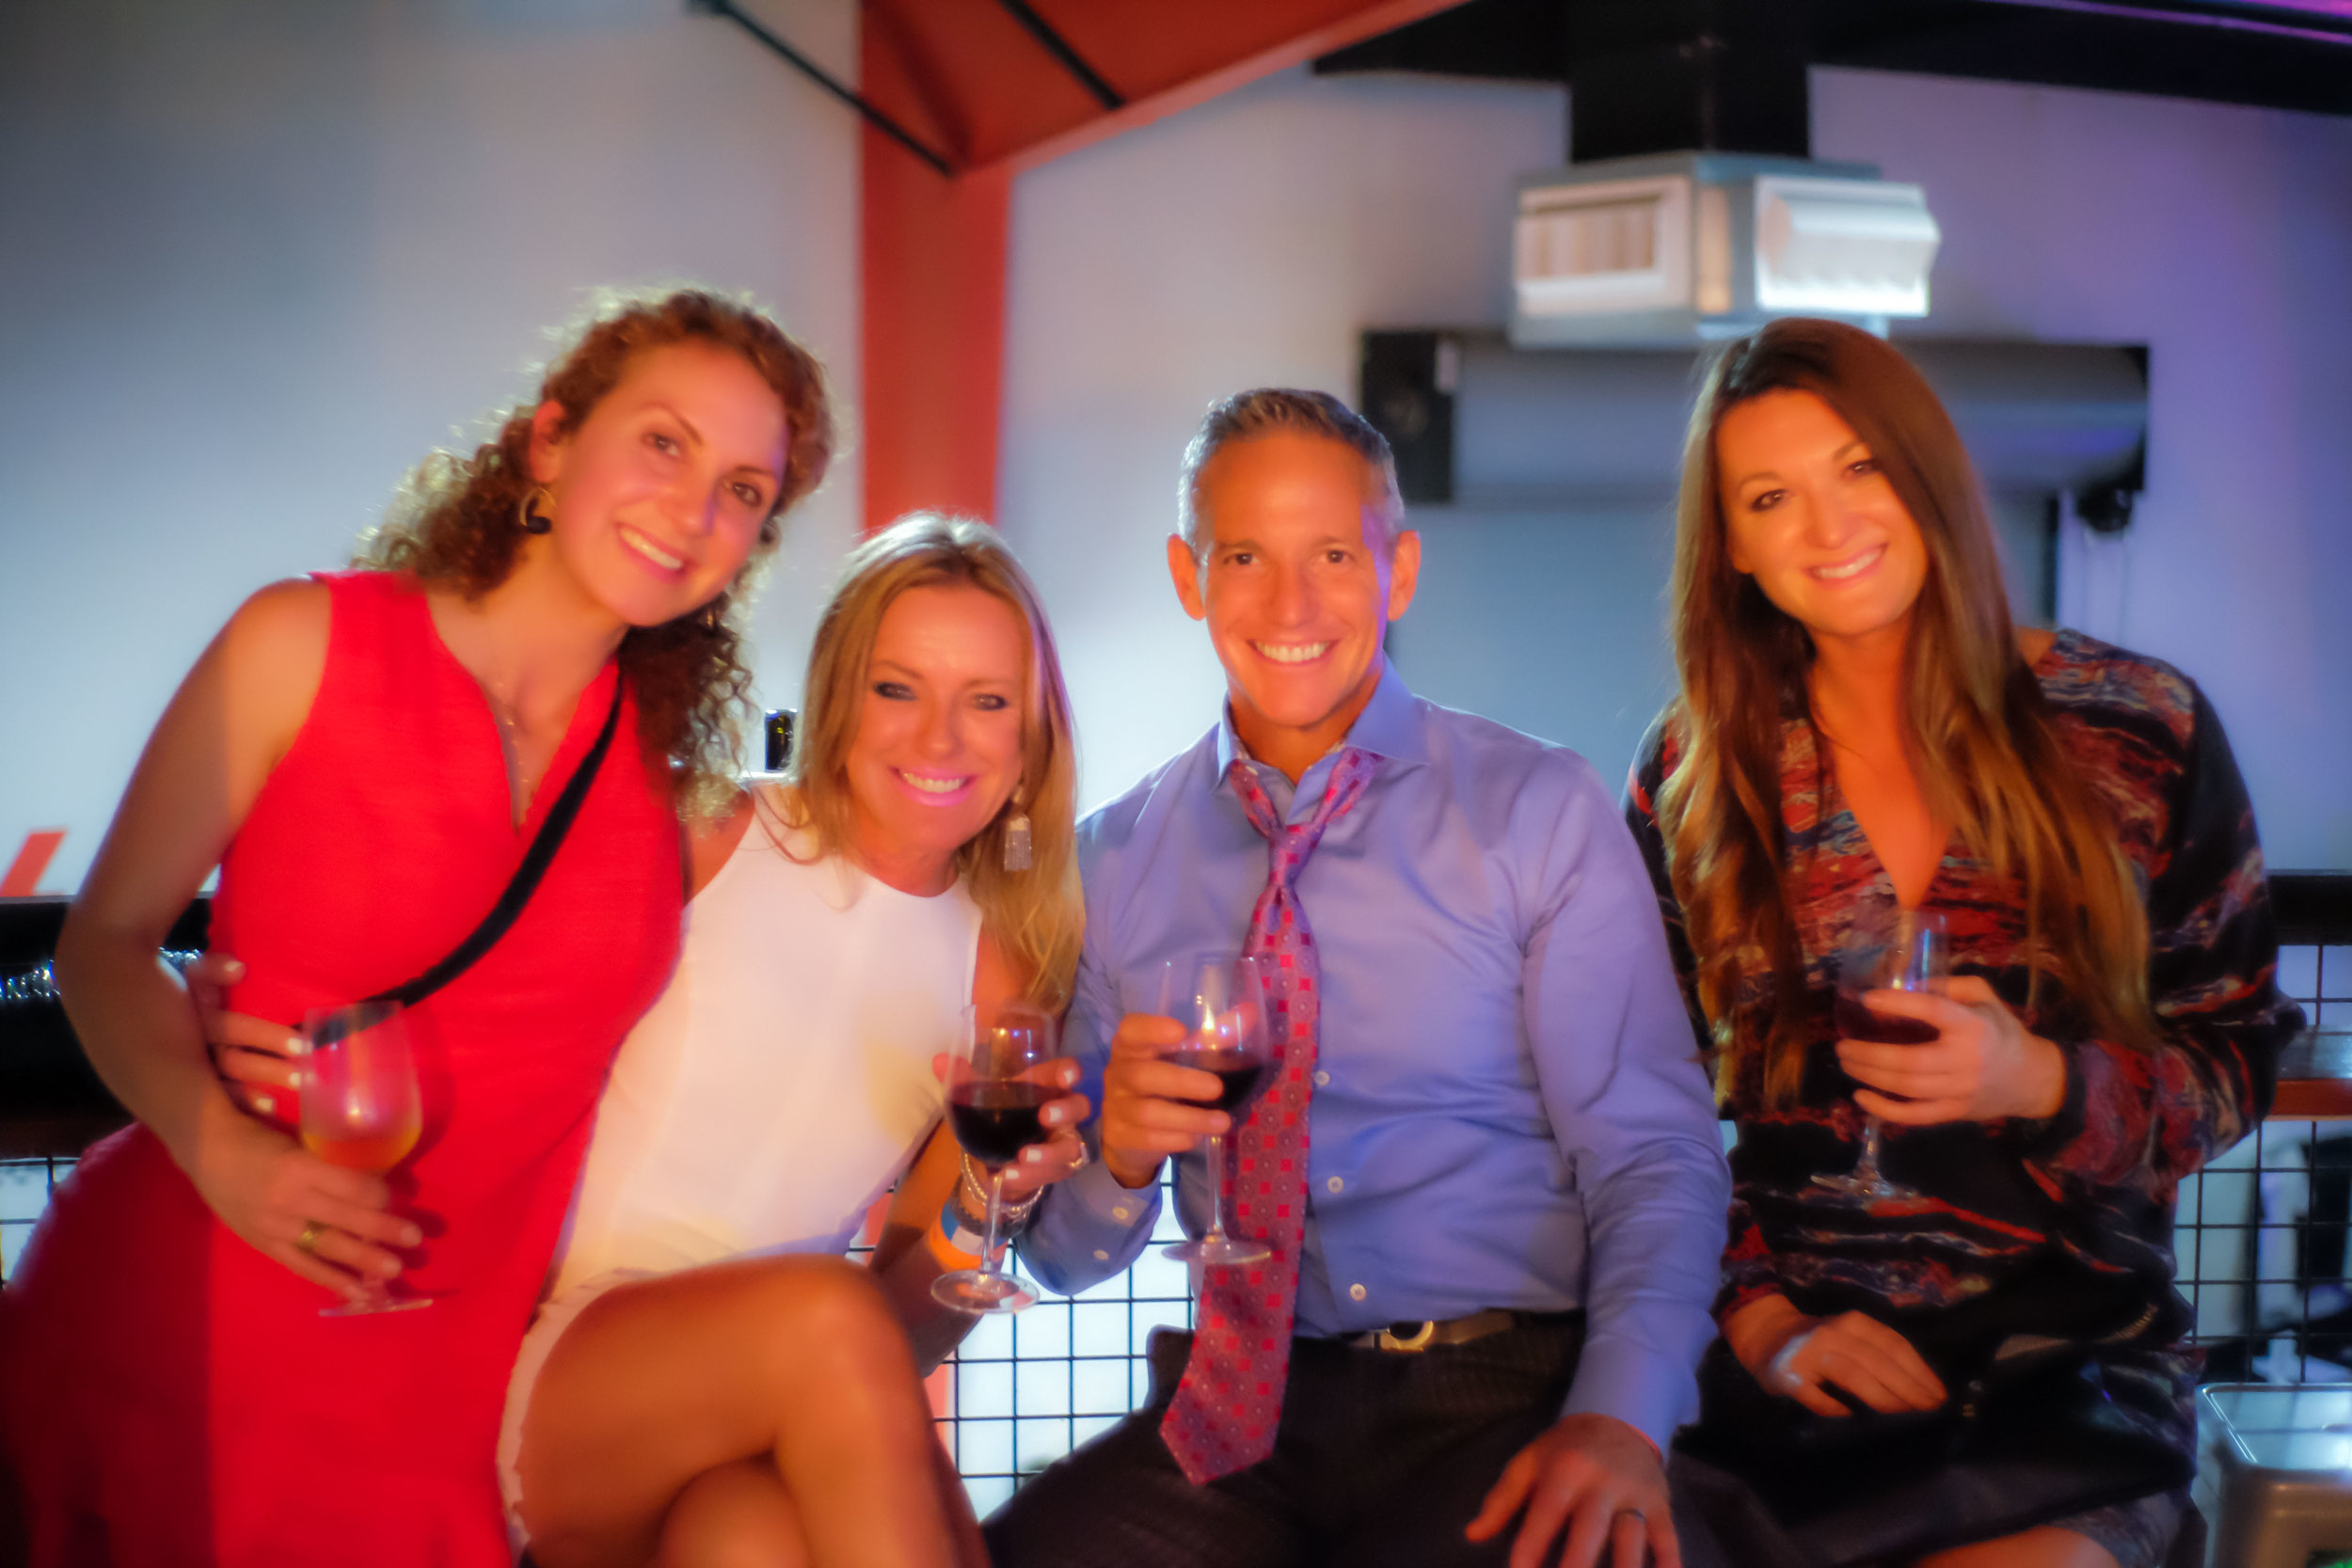 Paleo f(x)benefit - Party With a Purpose